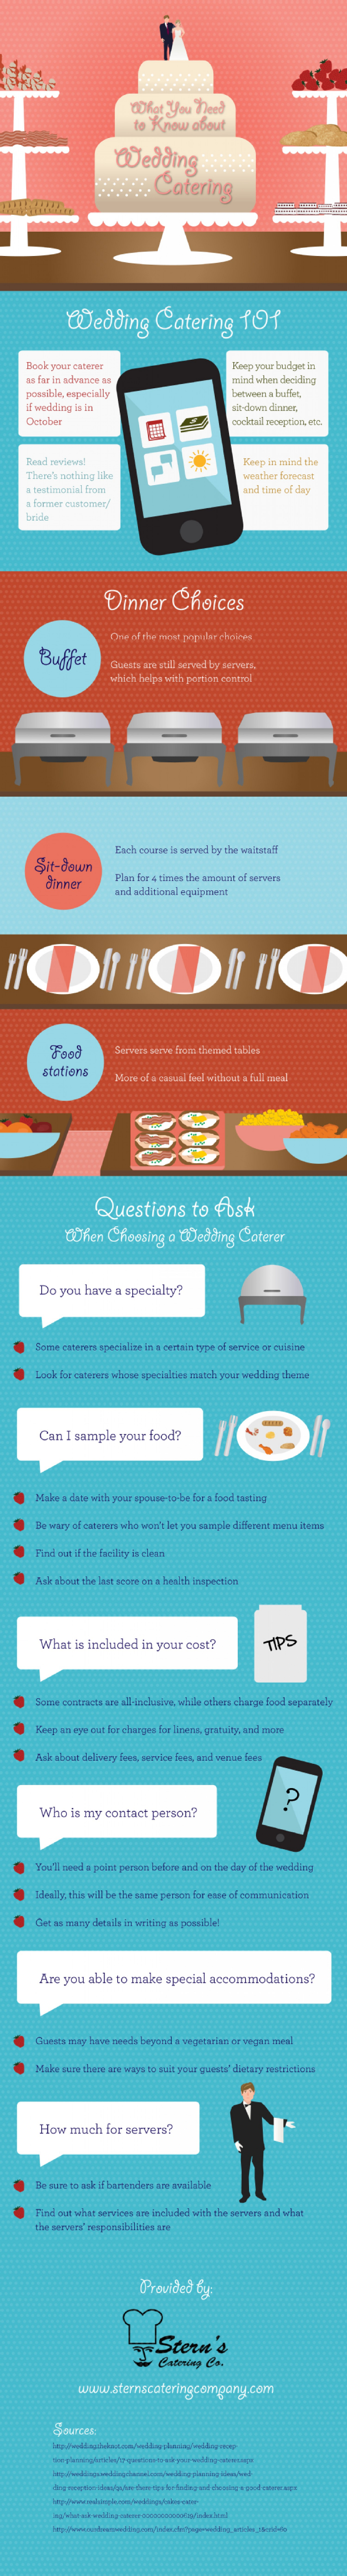 Wedding Catering Guide